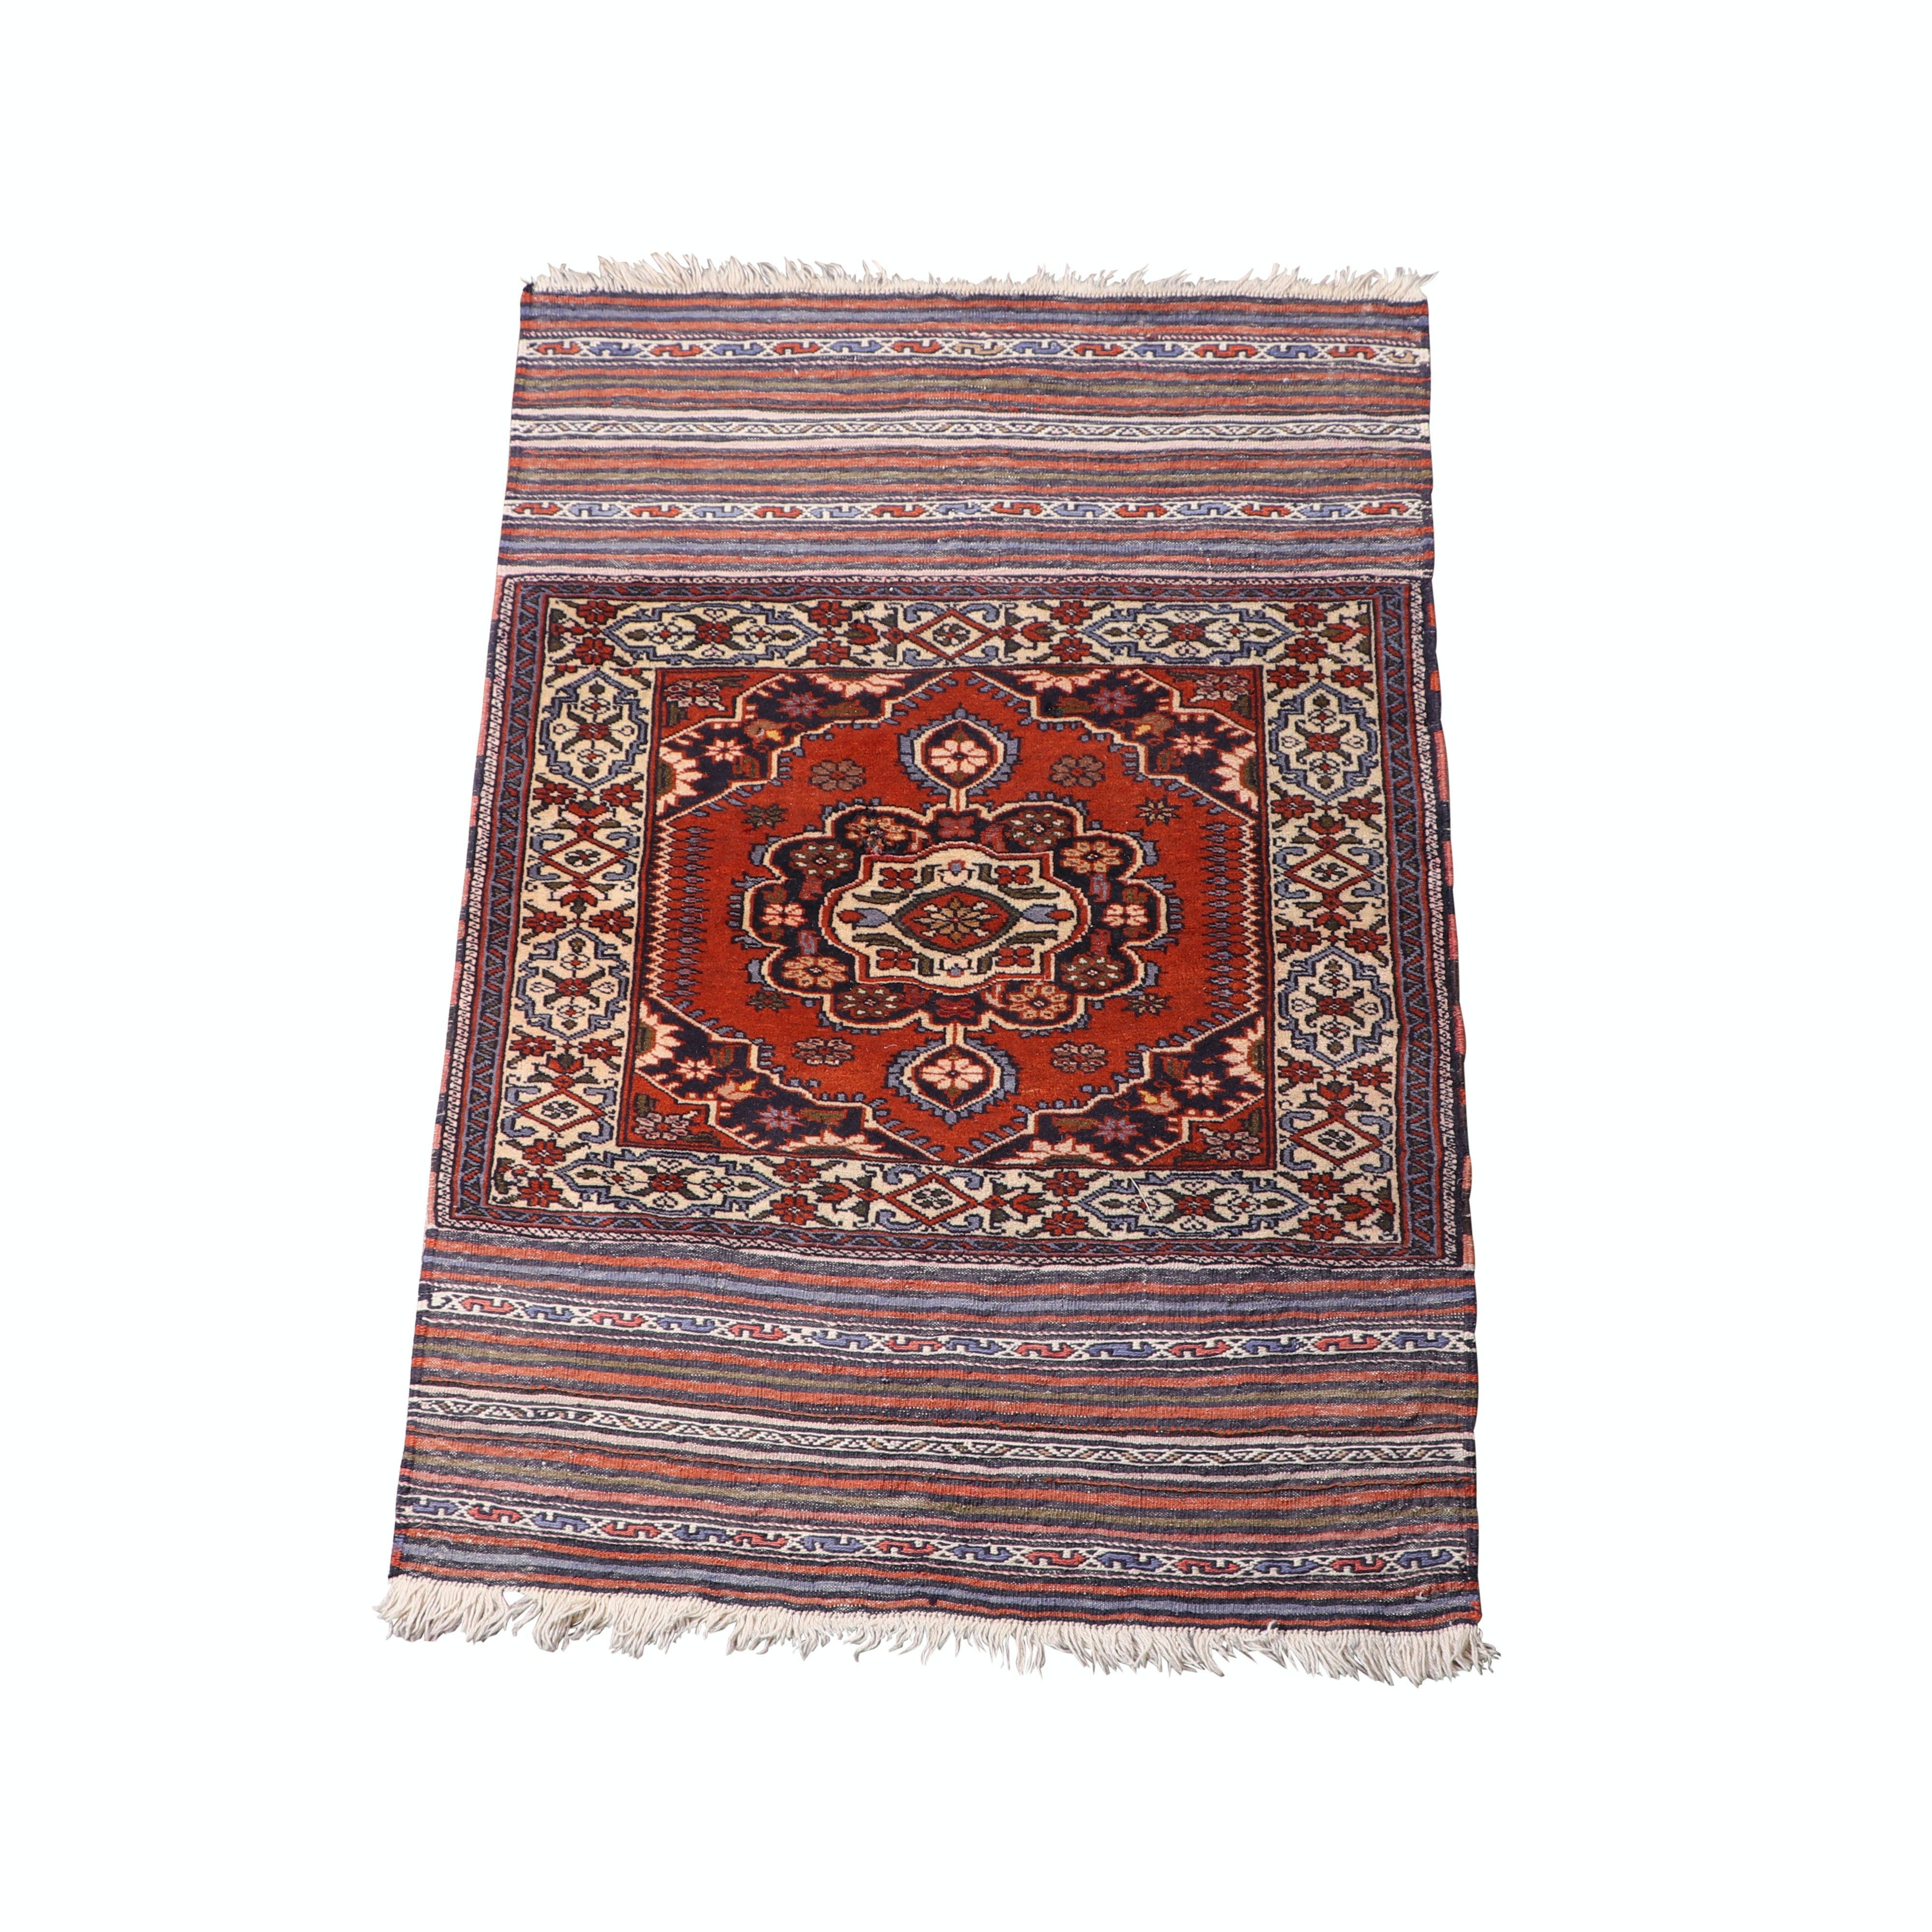 Hand-Knotted Anatolian Wool Rug with Embroidered Kilim Skirts